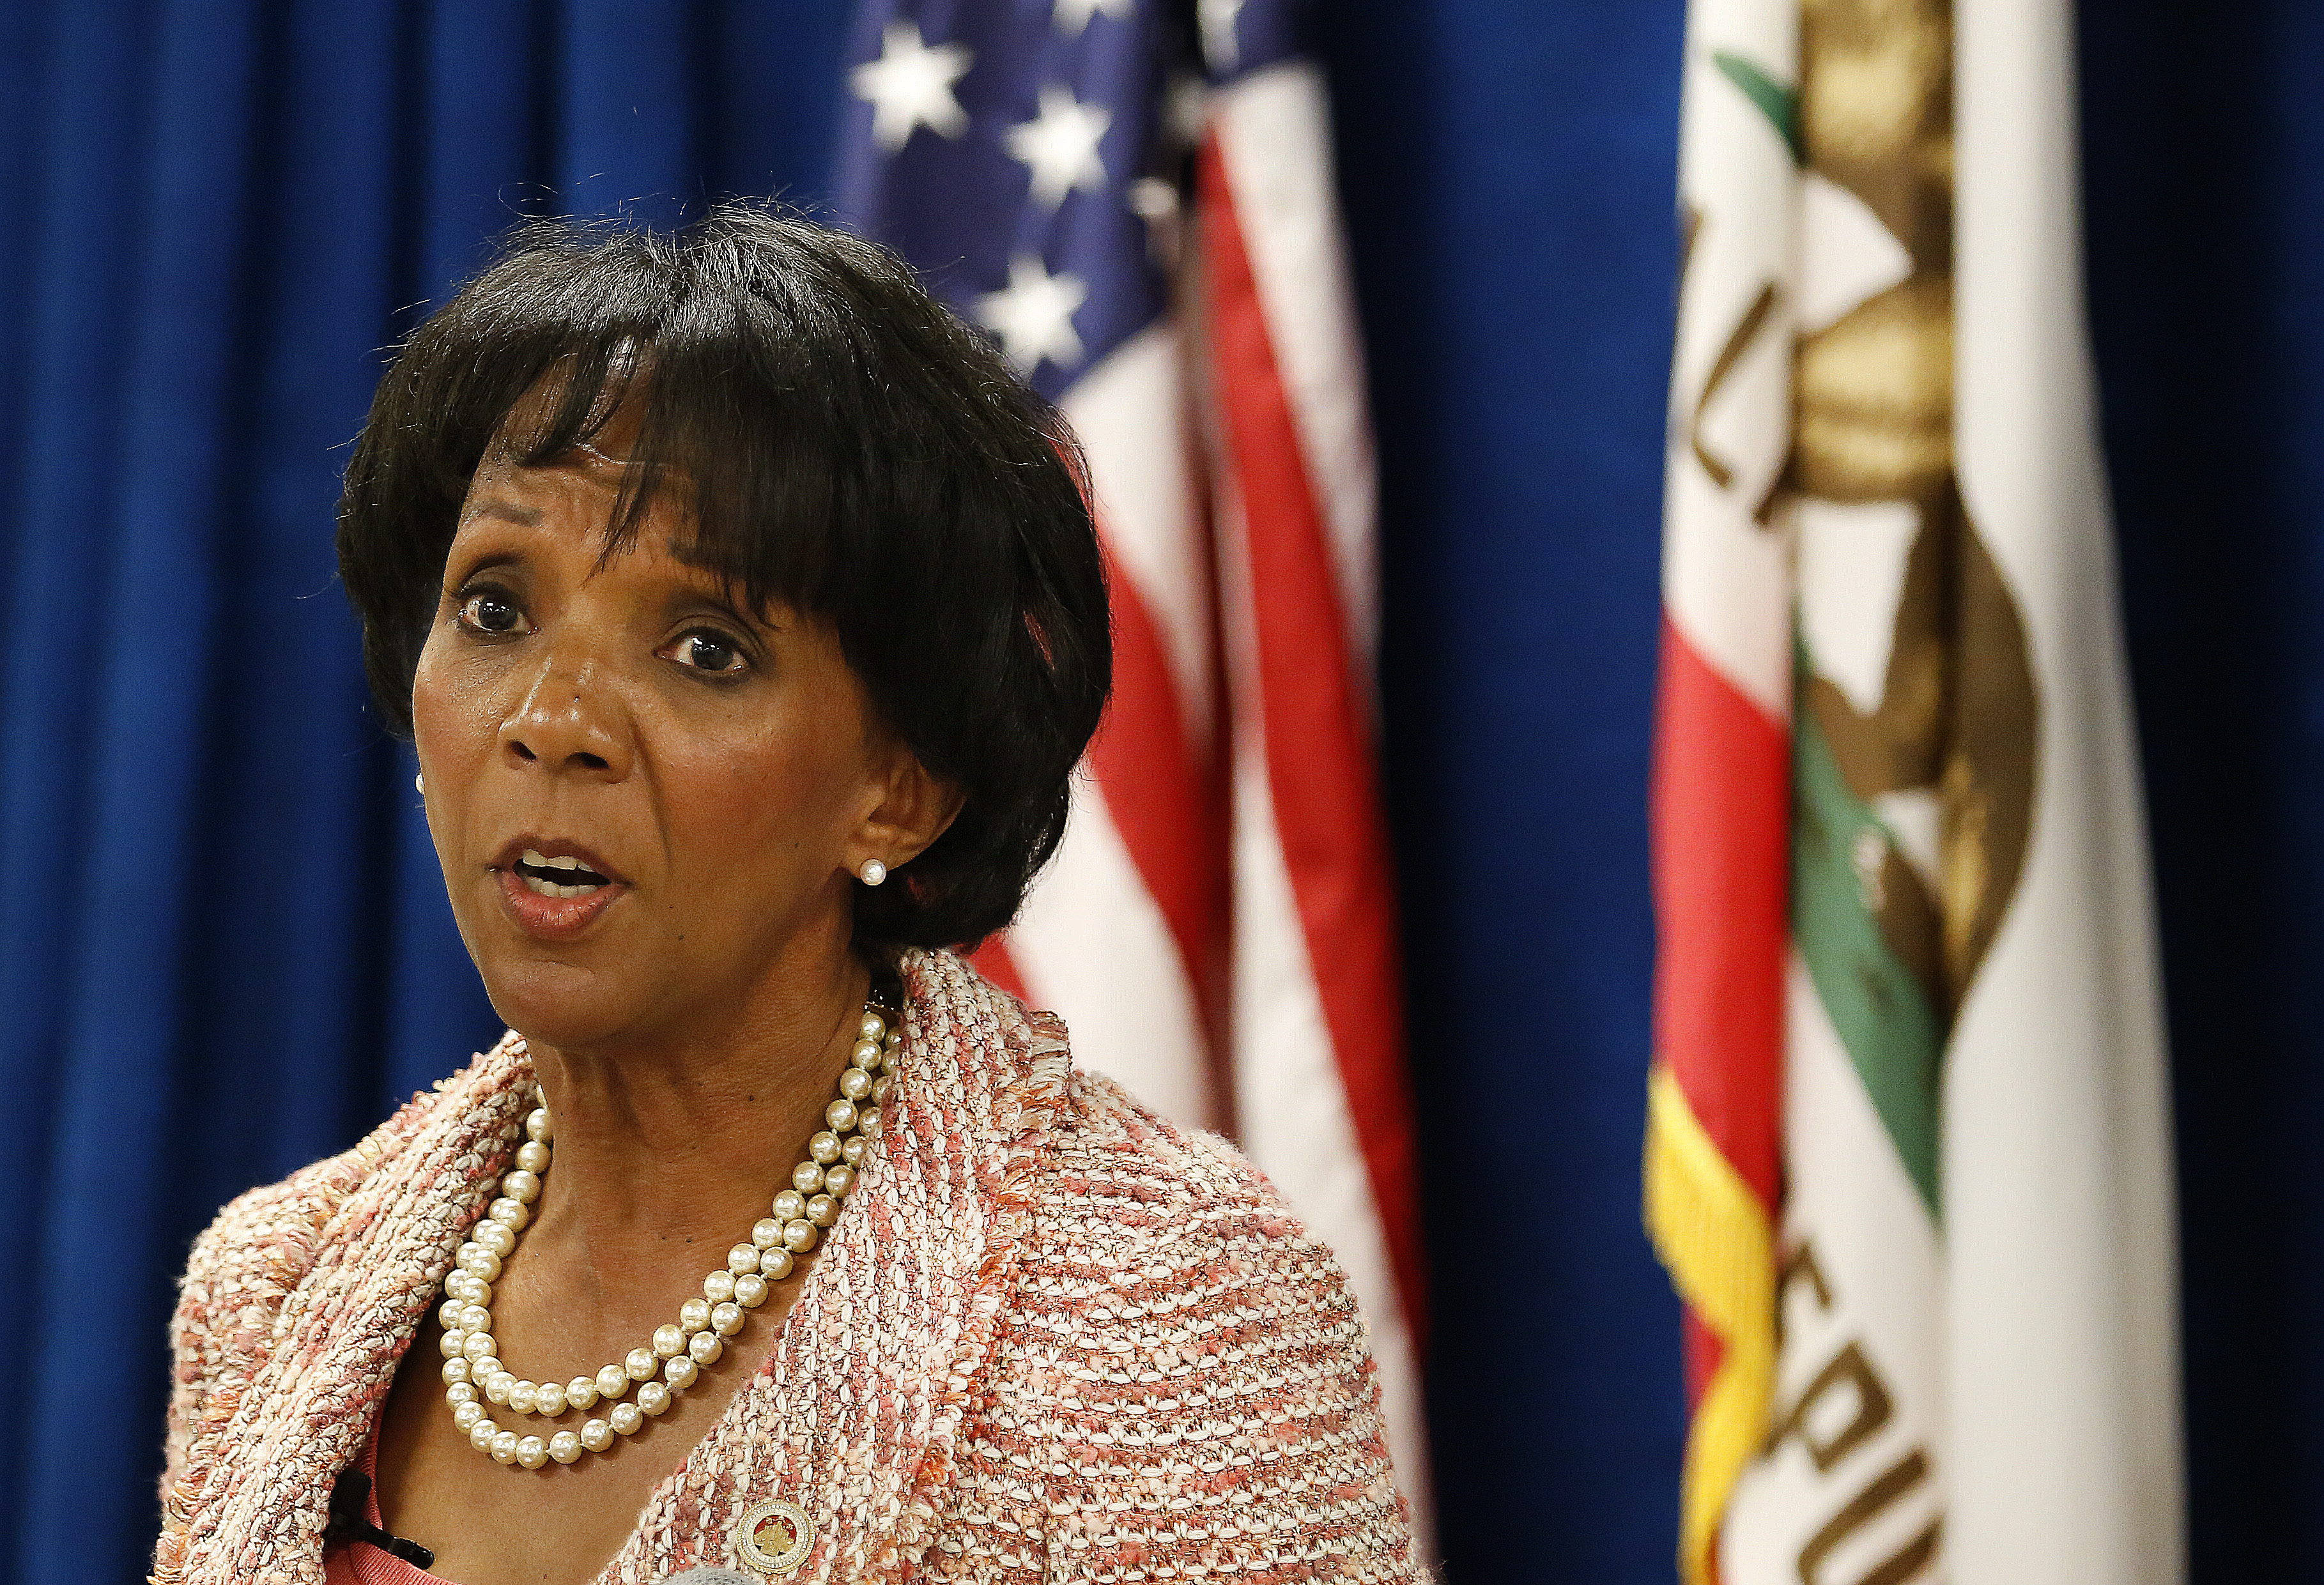 Los Angeles County District Attorney Jackie Lacey announces the creation of the Conviction Review Unit during a press conference on June 29, 2015 in  Los Angeles.